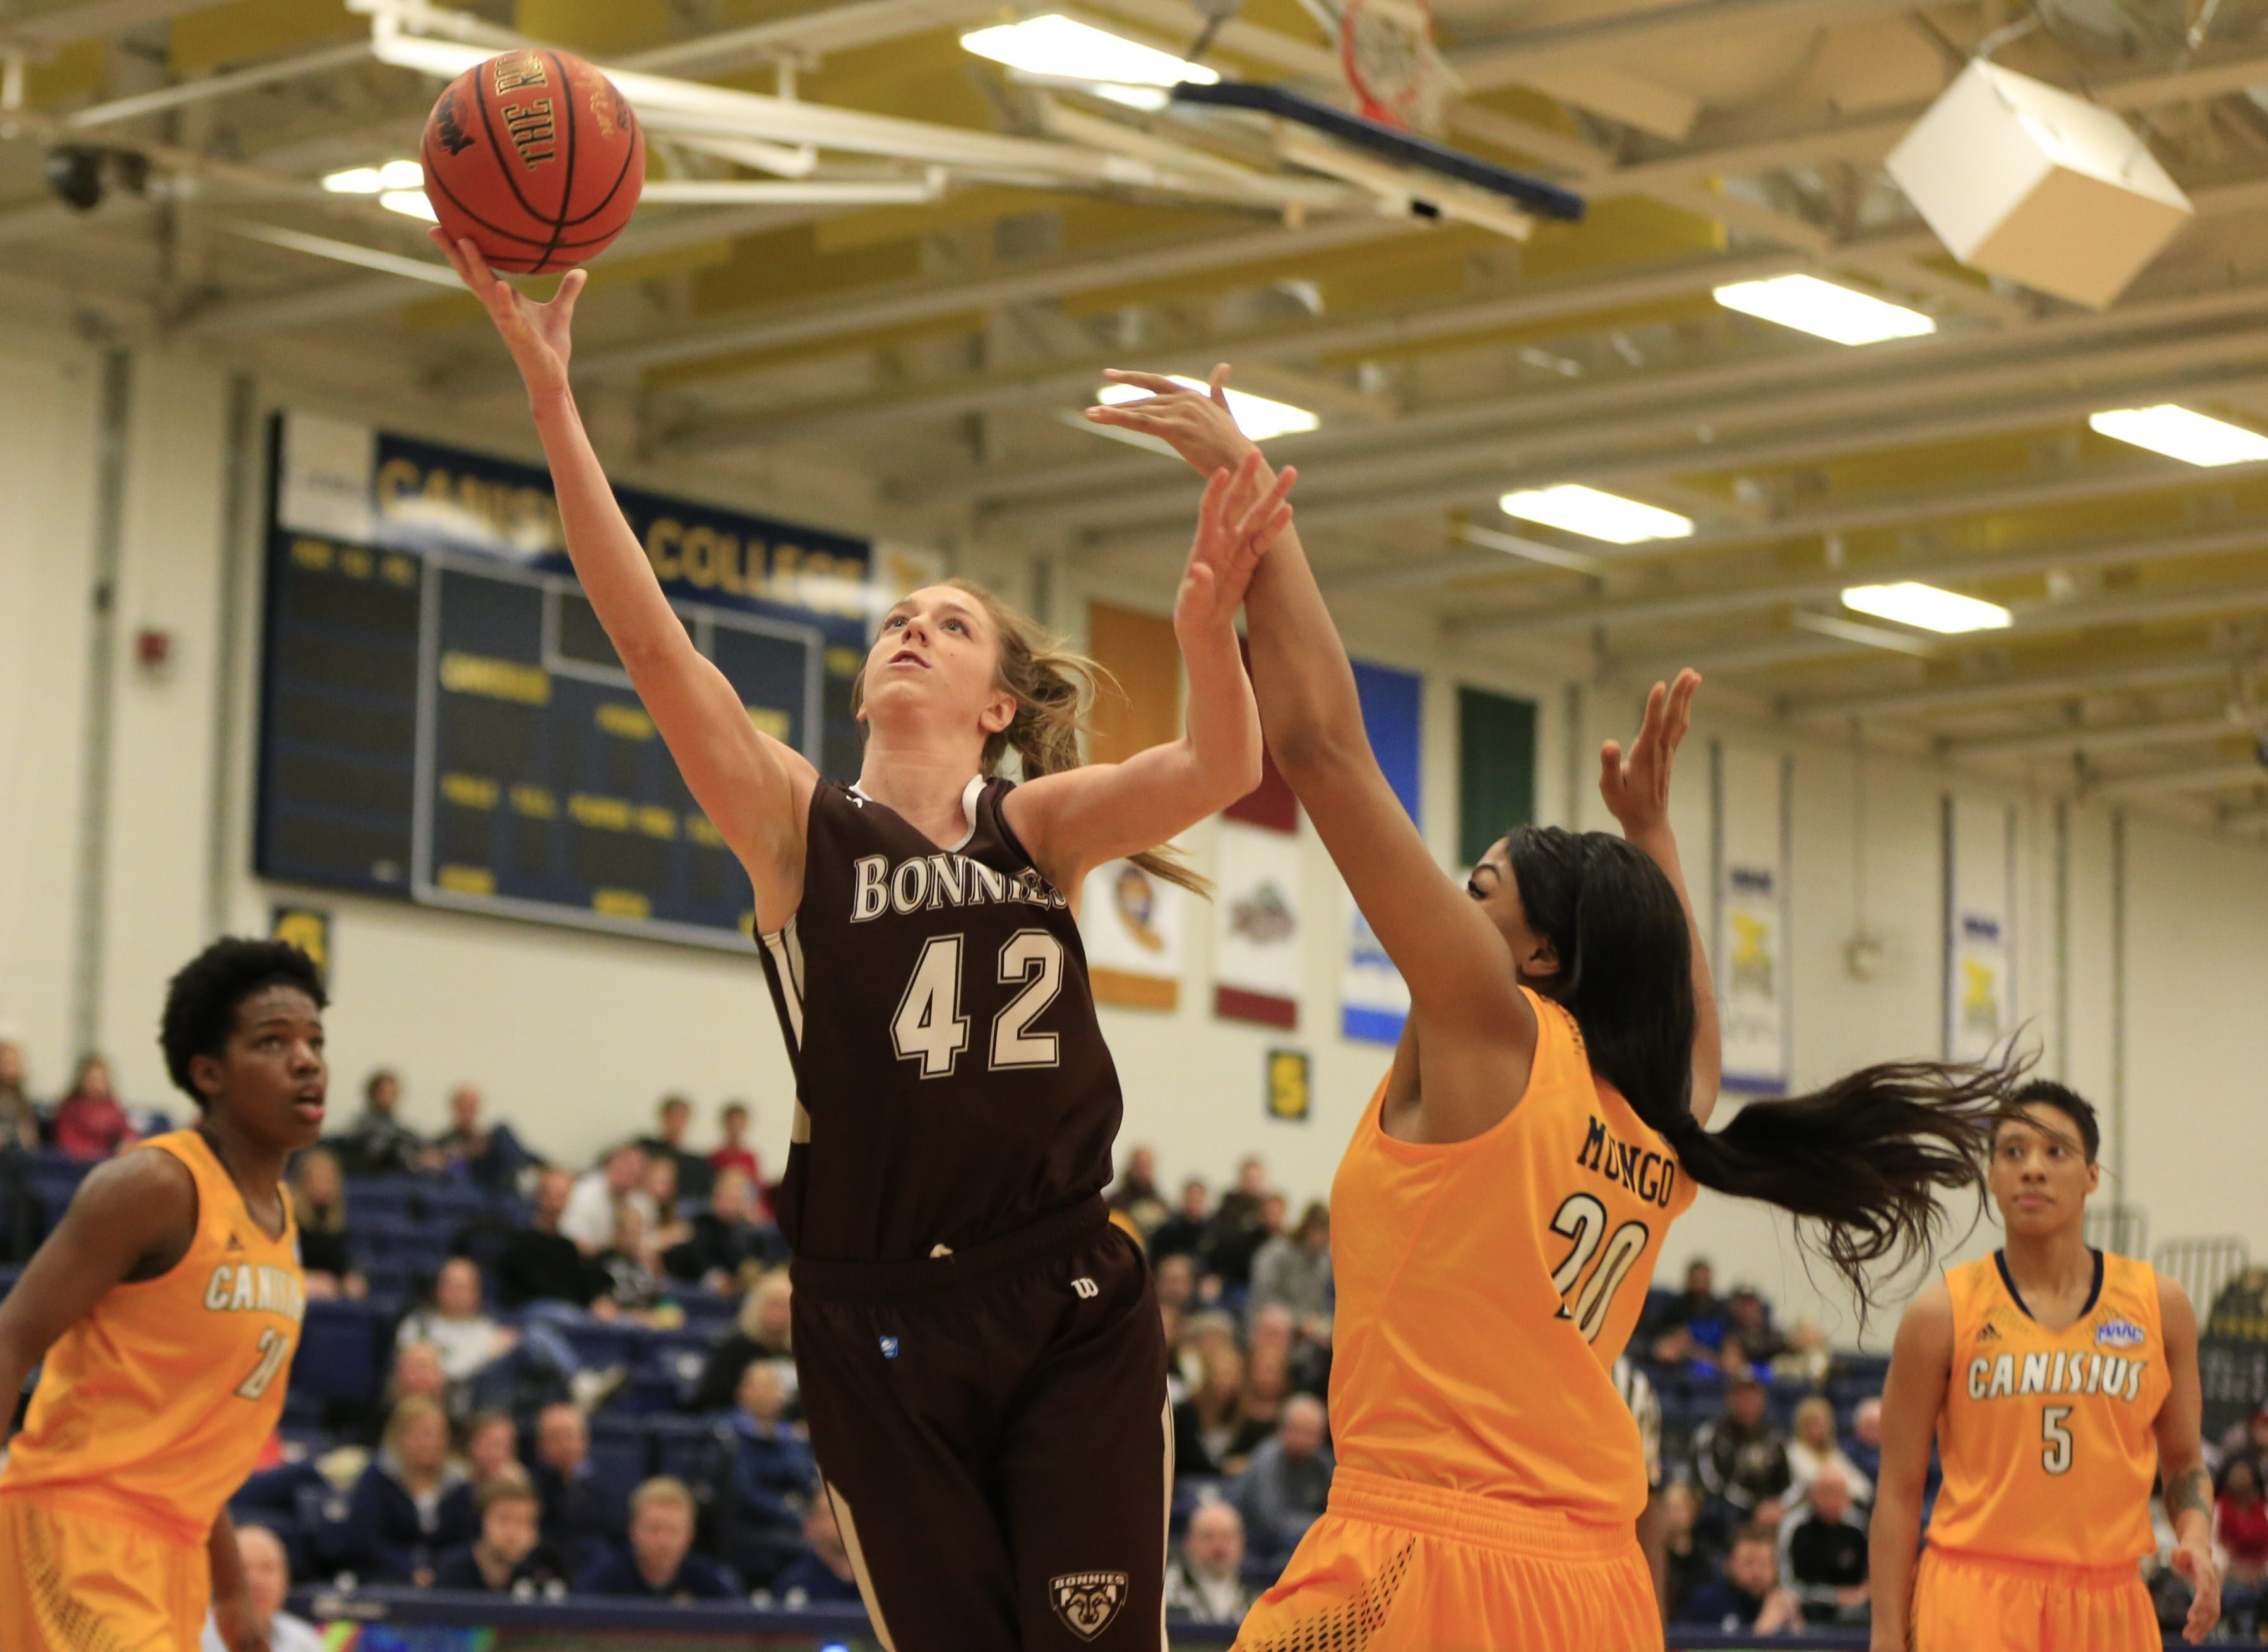 Katie Healy and the Bonnies are a driven team this season after the disappointment of a year ago.